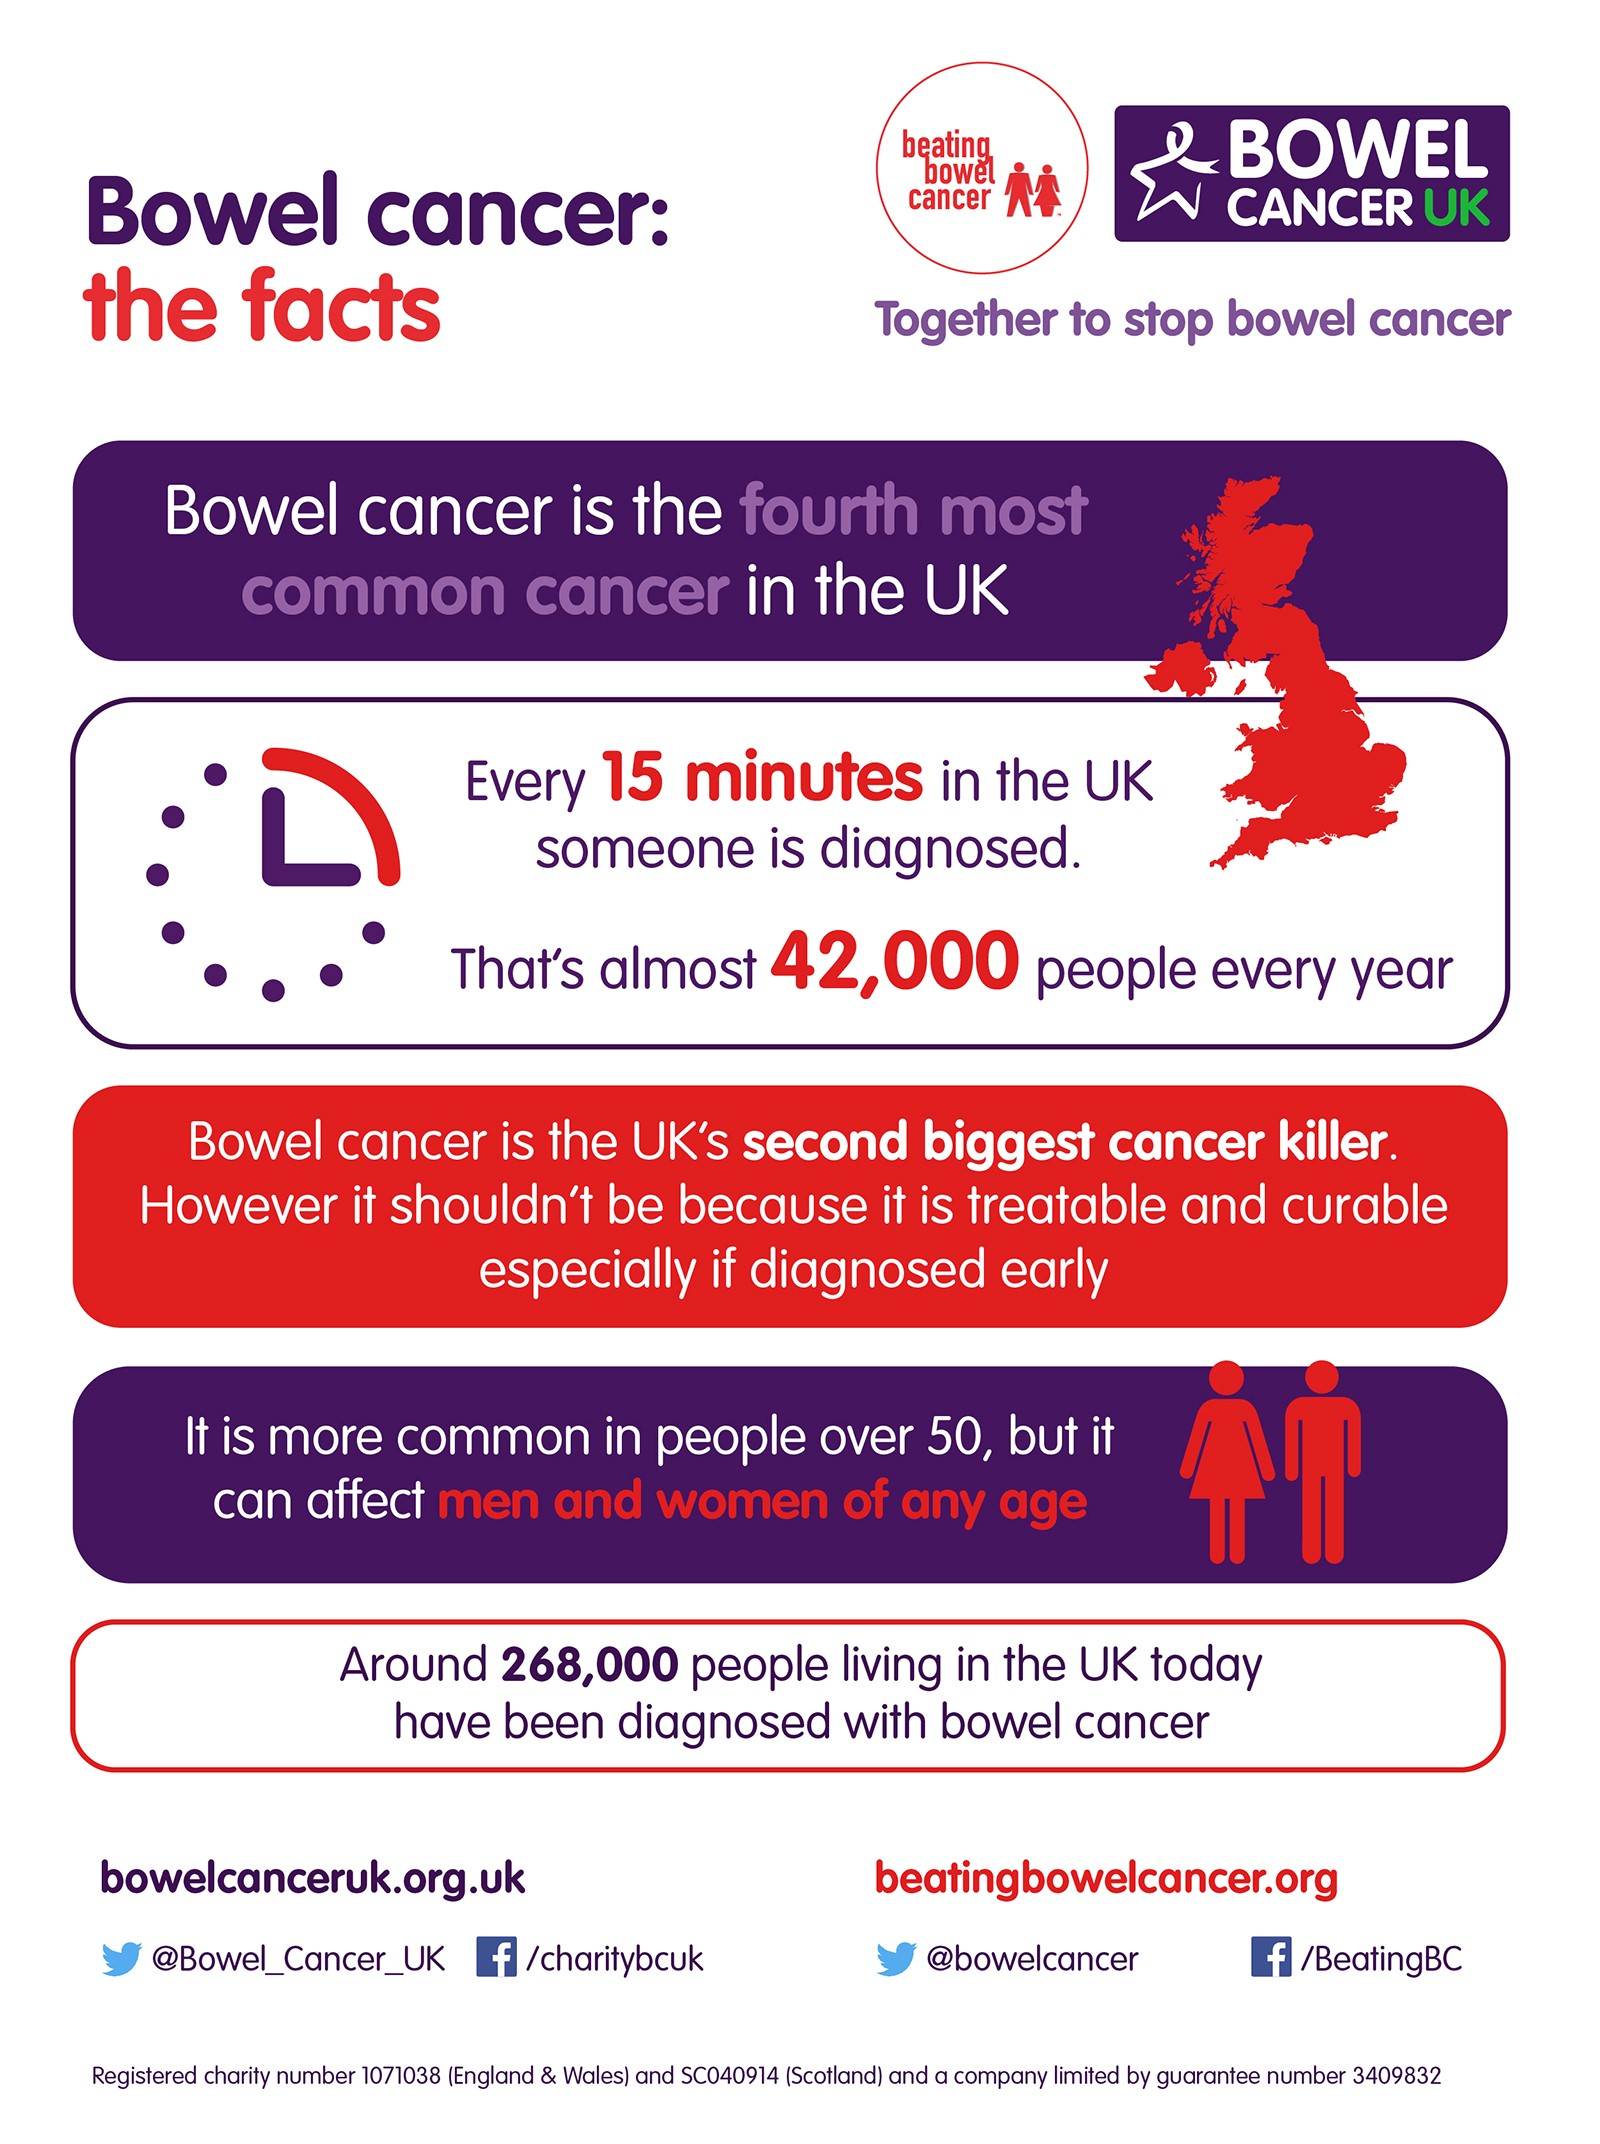 Bowel Cancel UK the facts poster